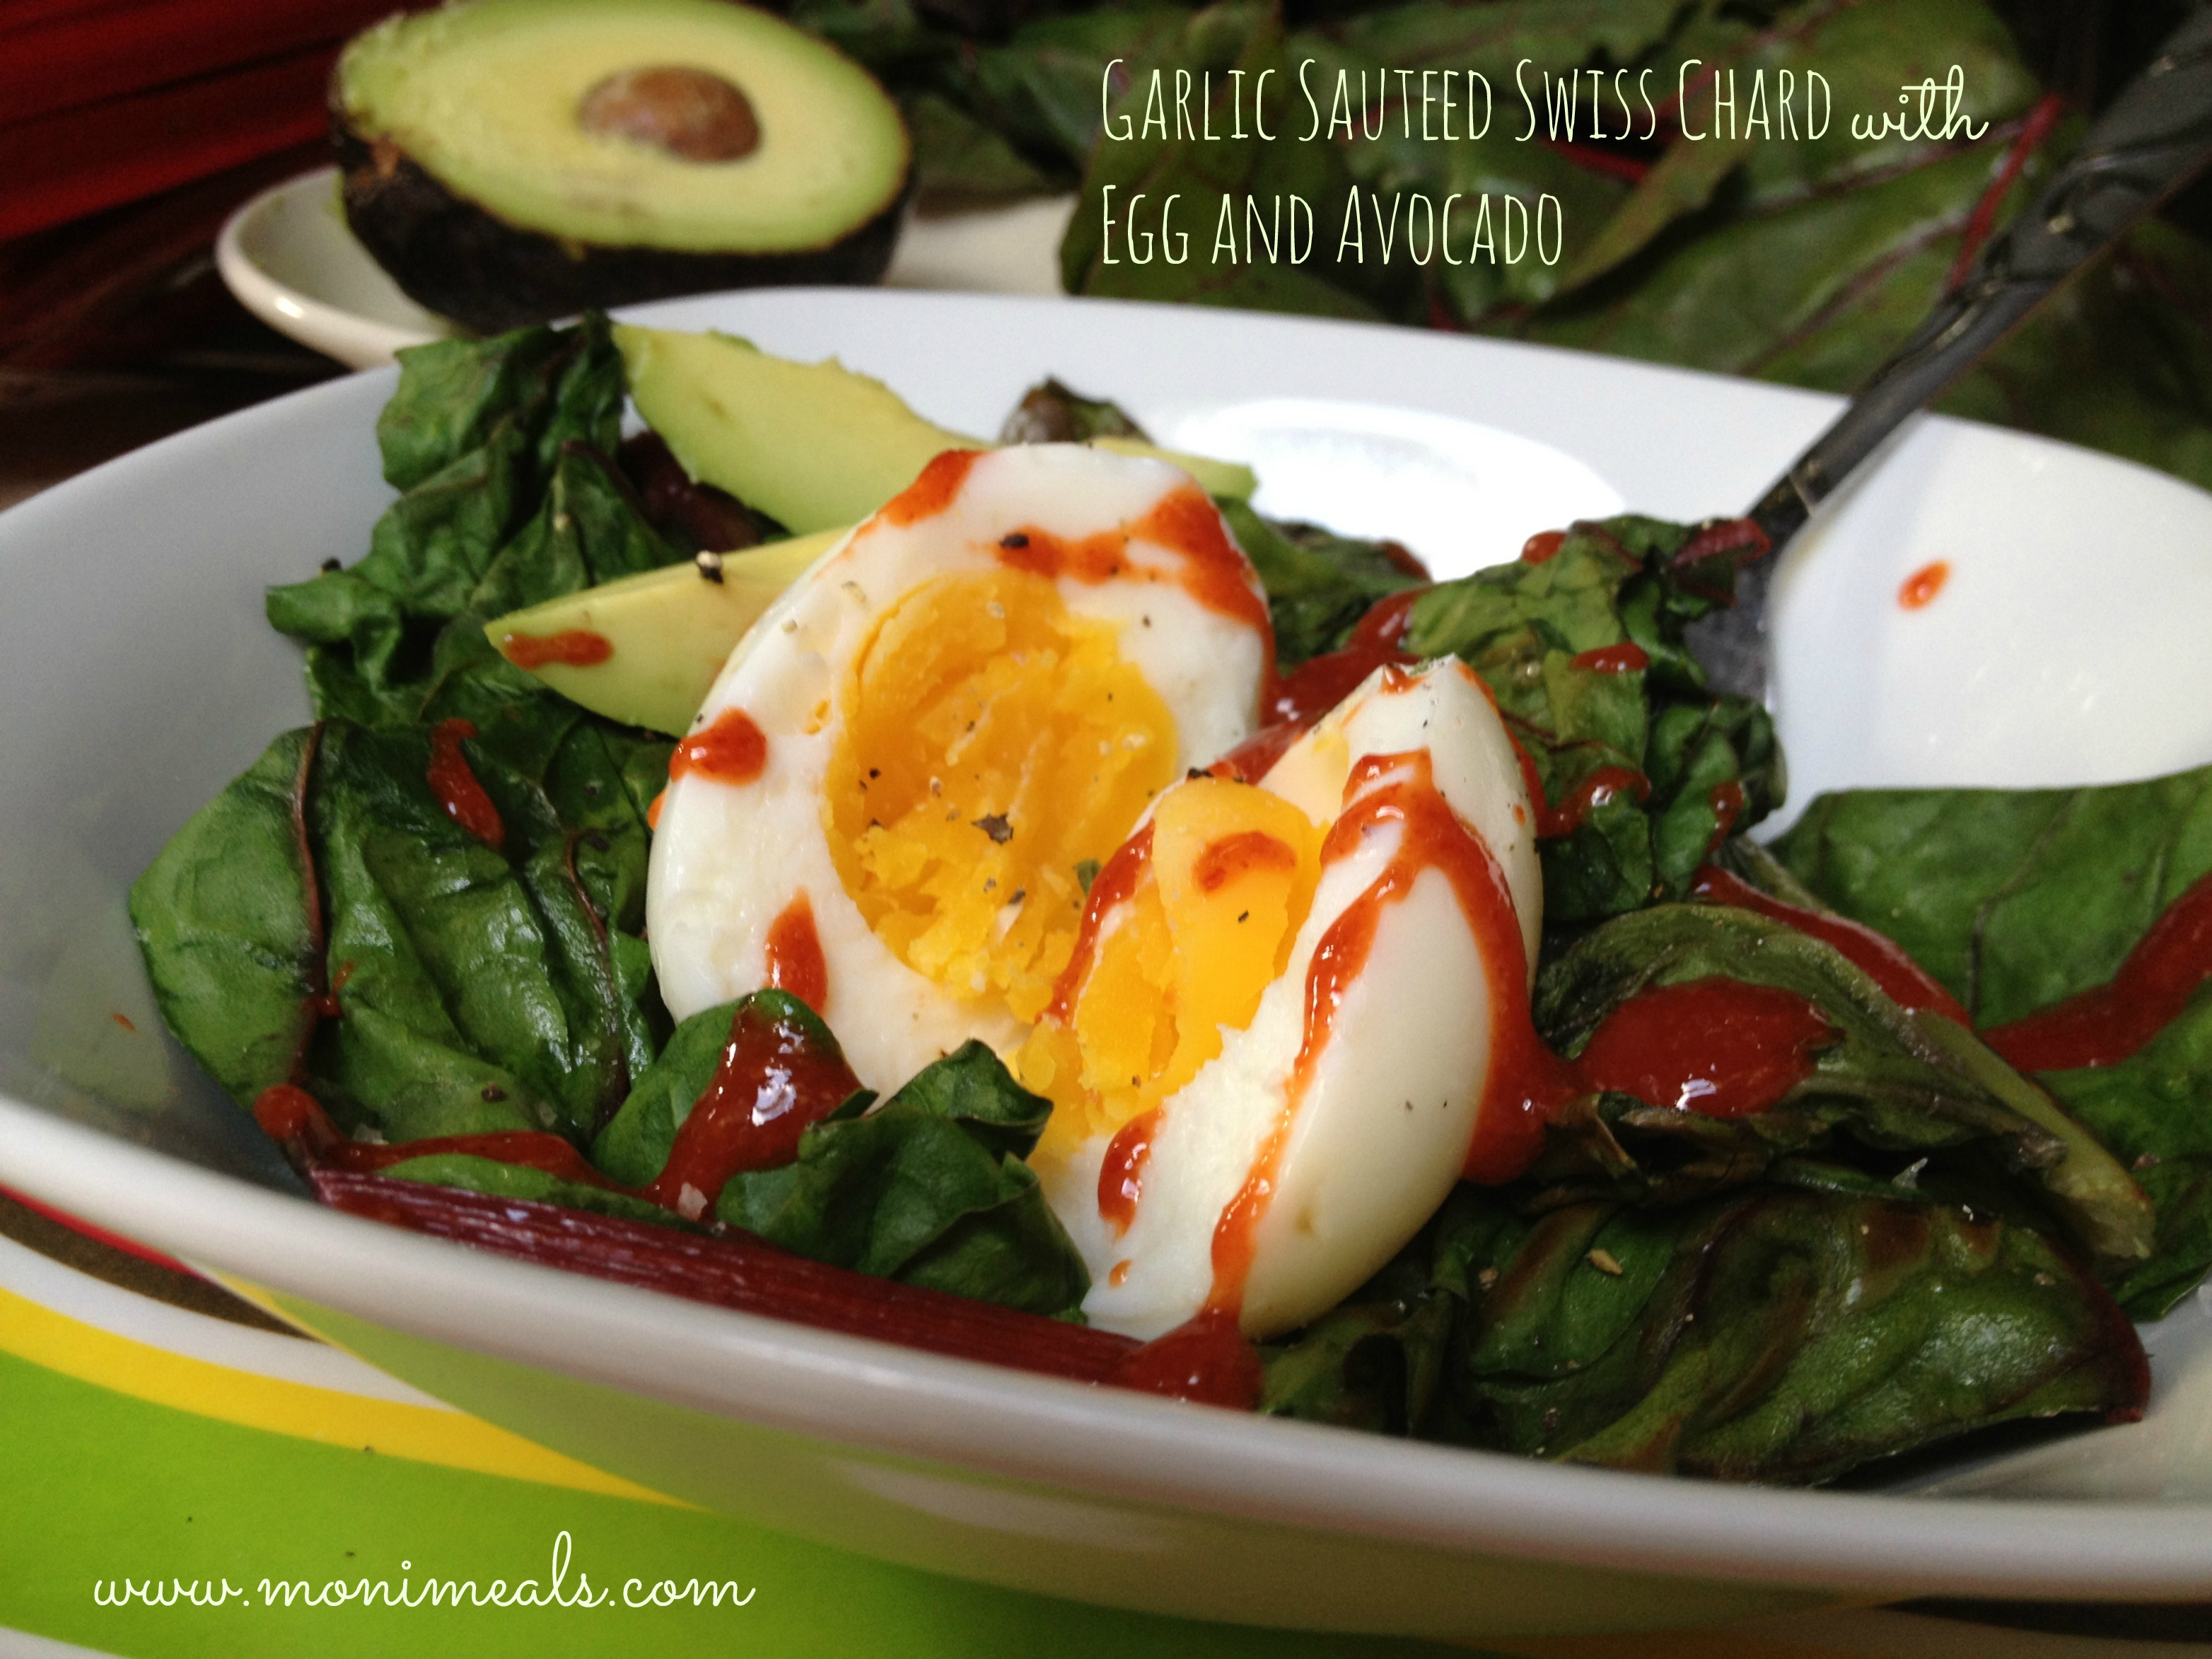 Swiss Chard Moni Meal